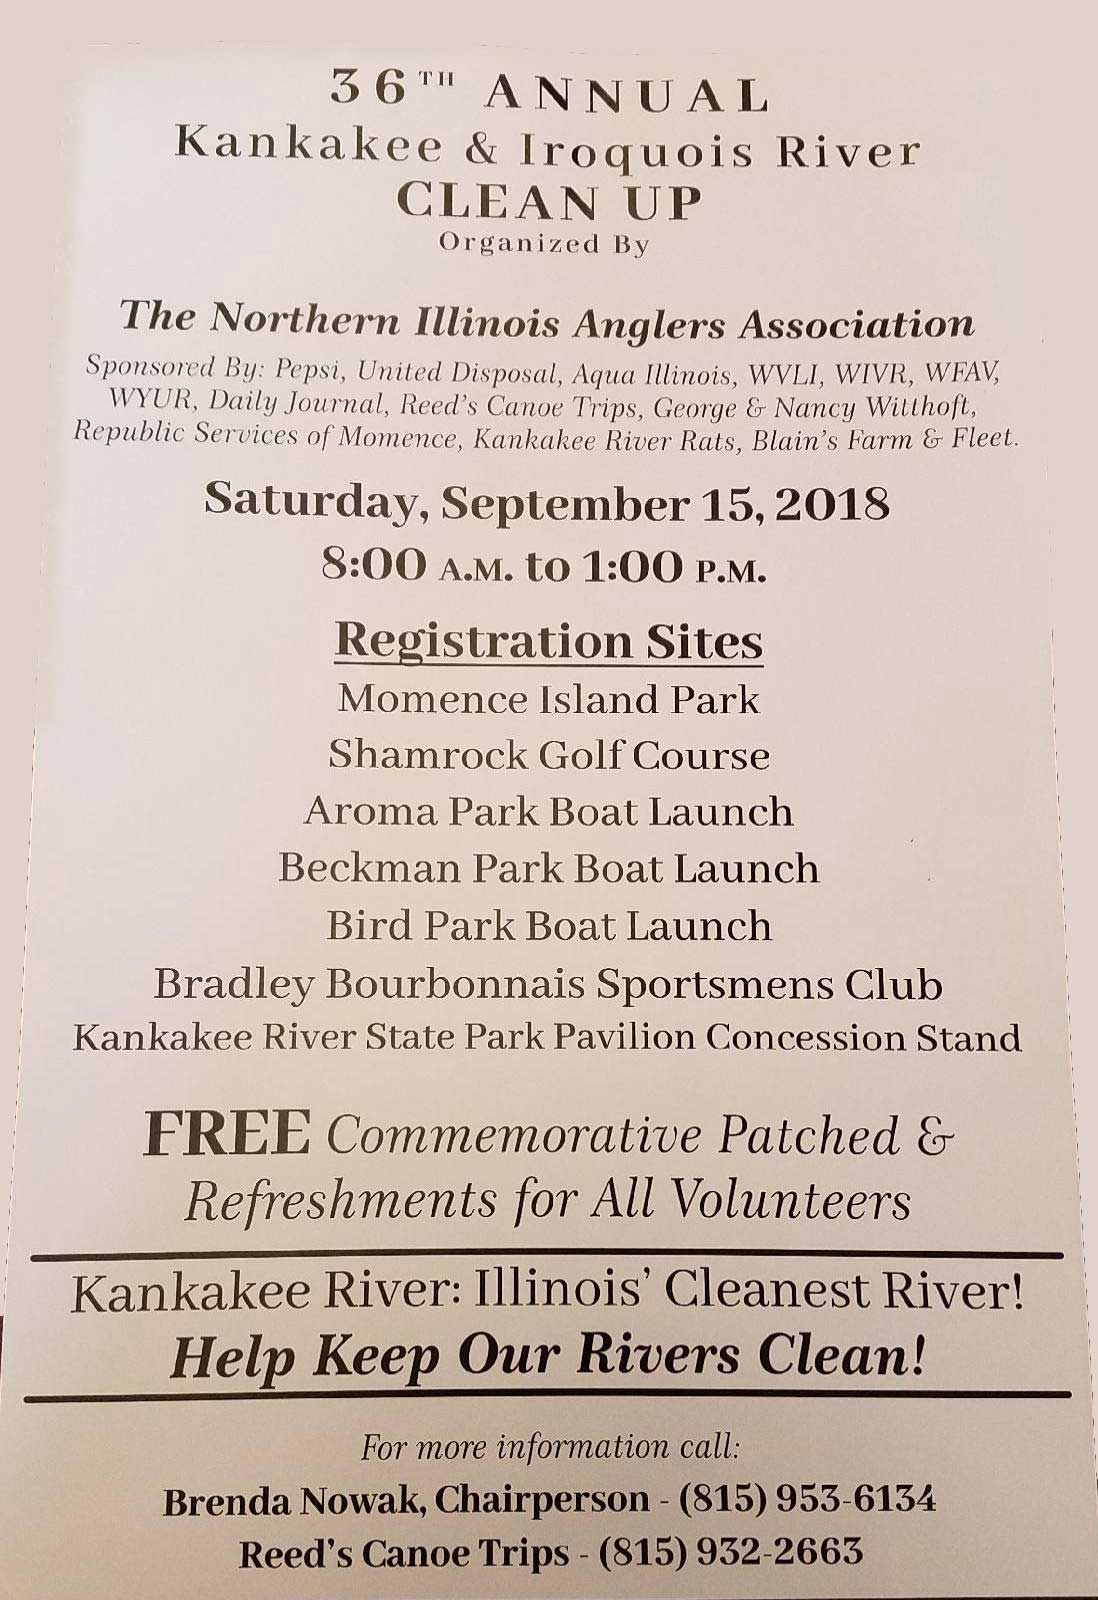 36TH ANNUAL KANKAKEE & IROQUOIS RIVER CLEAN UP